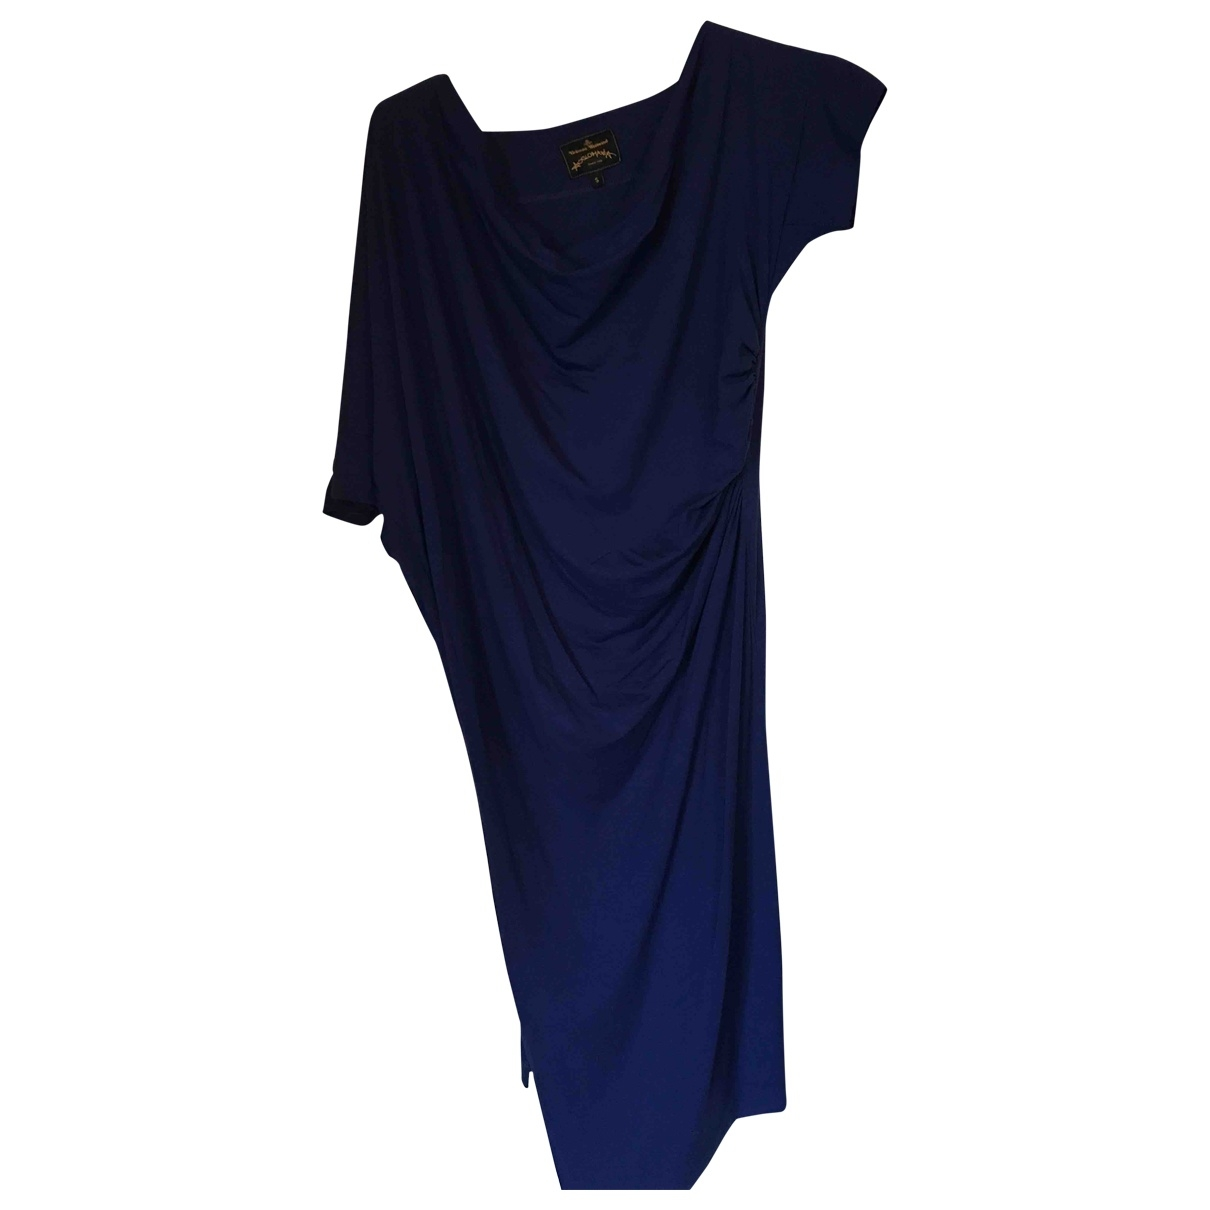 Vivienne Westwood Anglomania \N Navy Cotton - elasthane dress for Women 10 UK